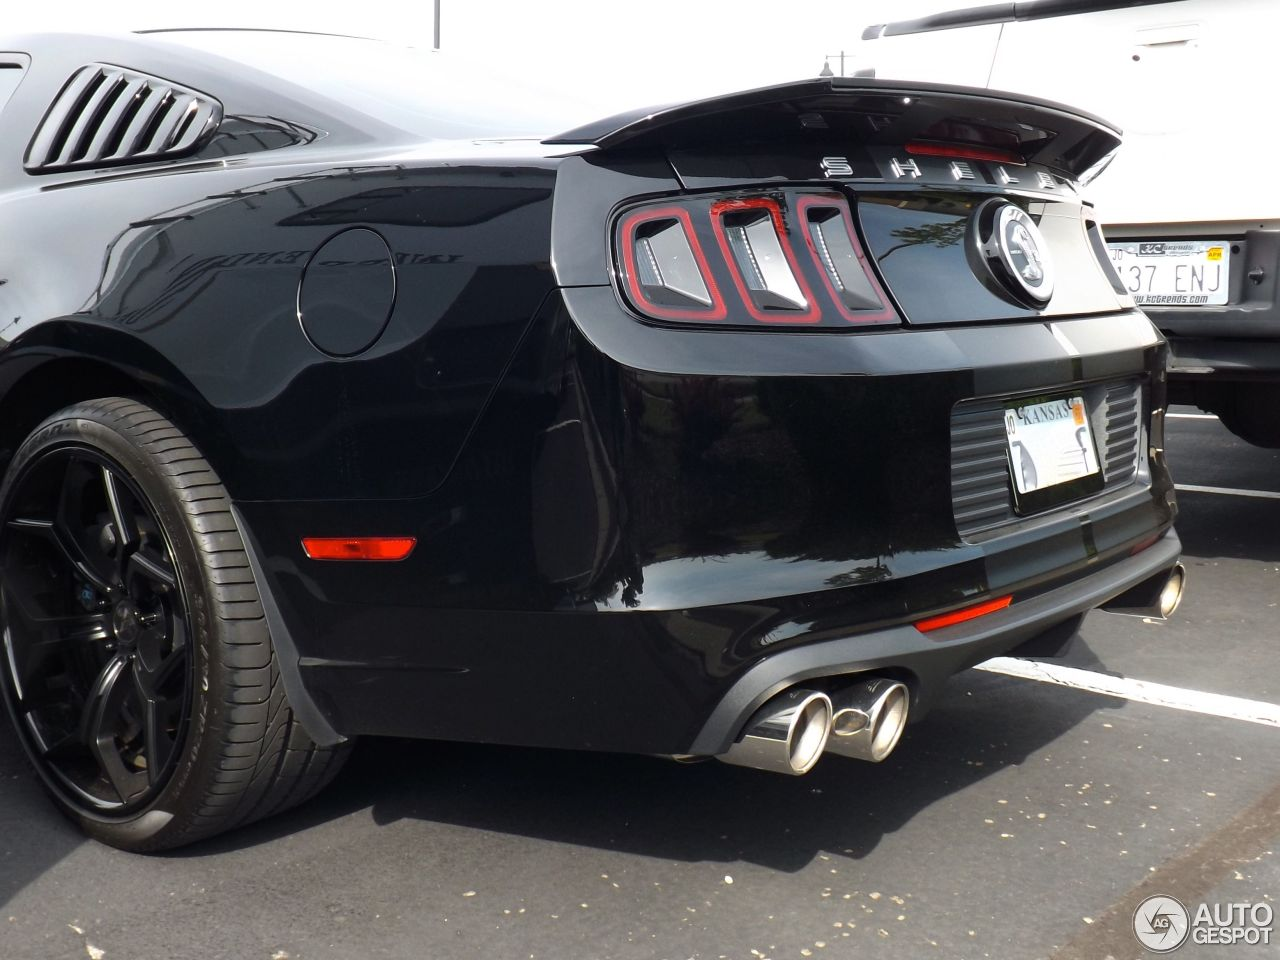 Ford Mustang Shelby Gt500 2013 27 June 2013 Autogespot